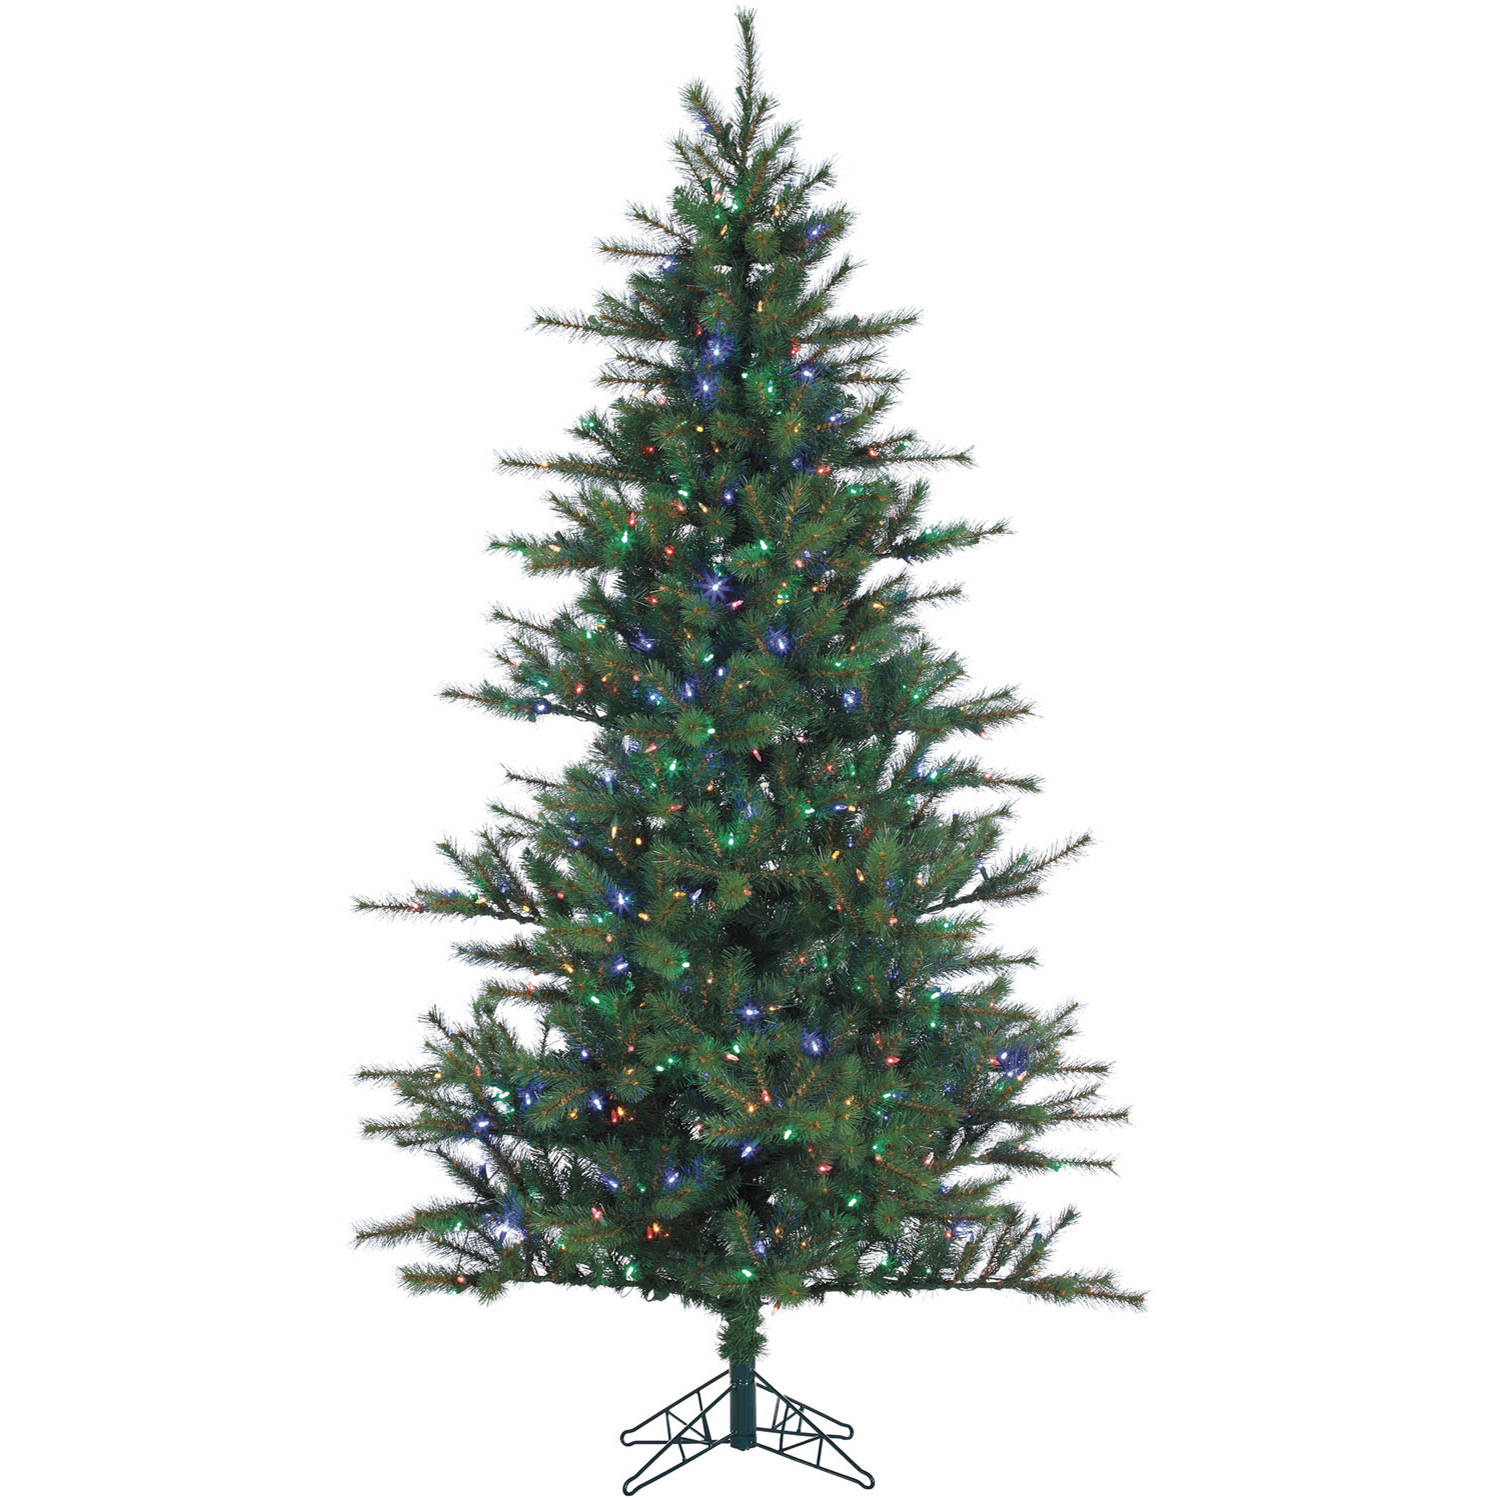 Fraser Hill Farm Pre-Lit 7.5' Southern Peace Pine Artificial Christmas Tree with Multi-Color LED String Lighting